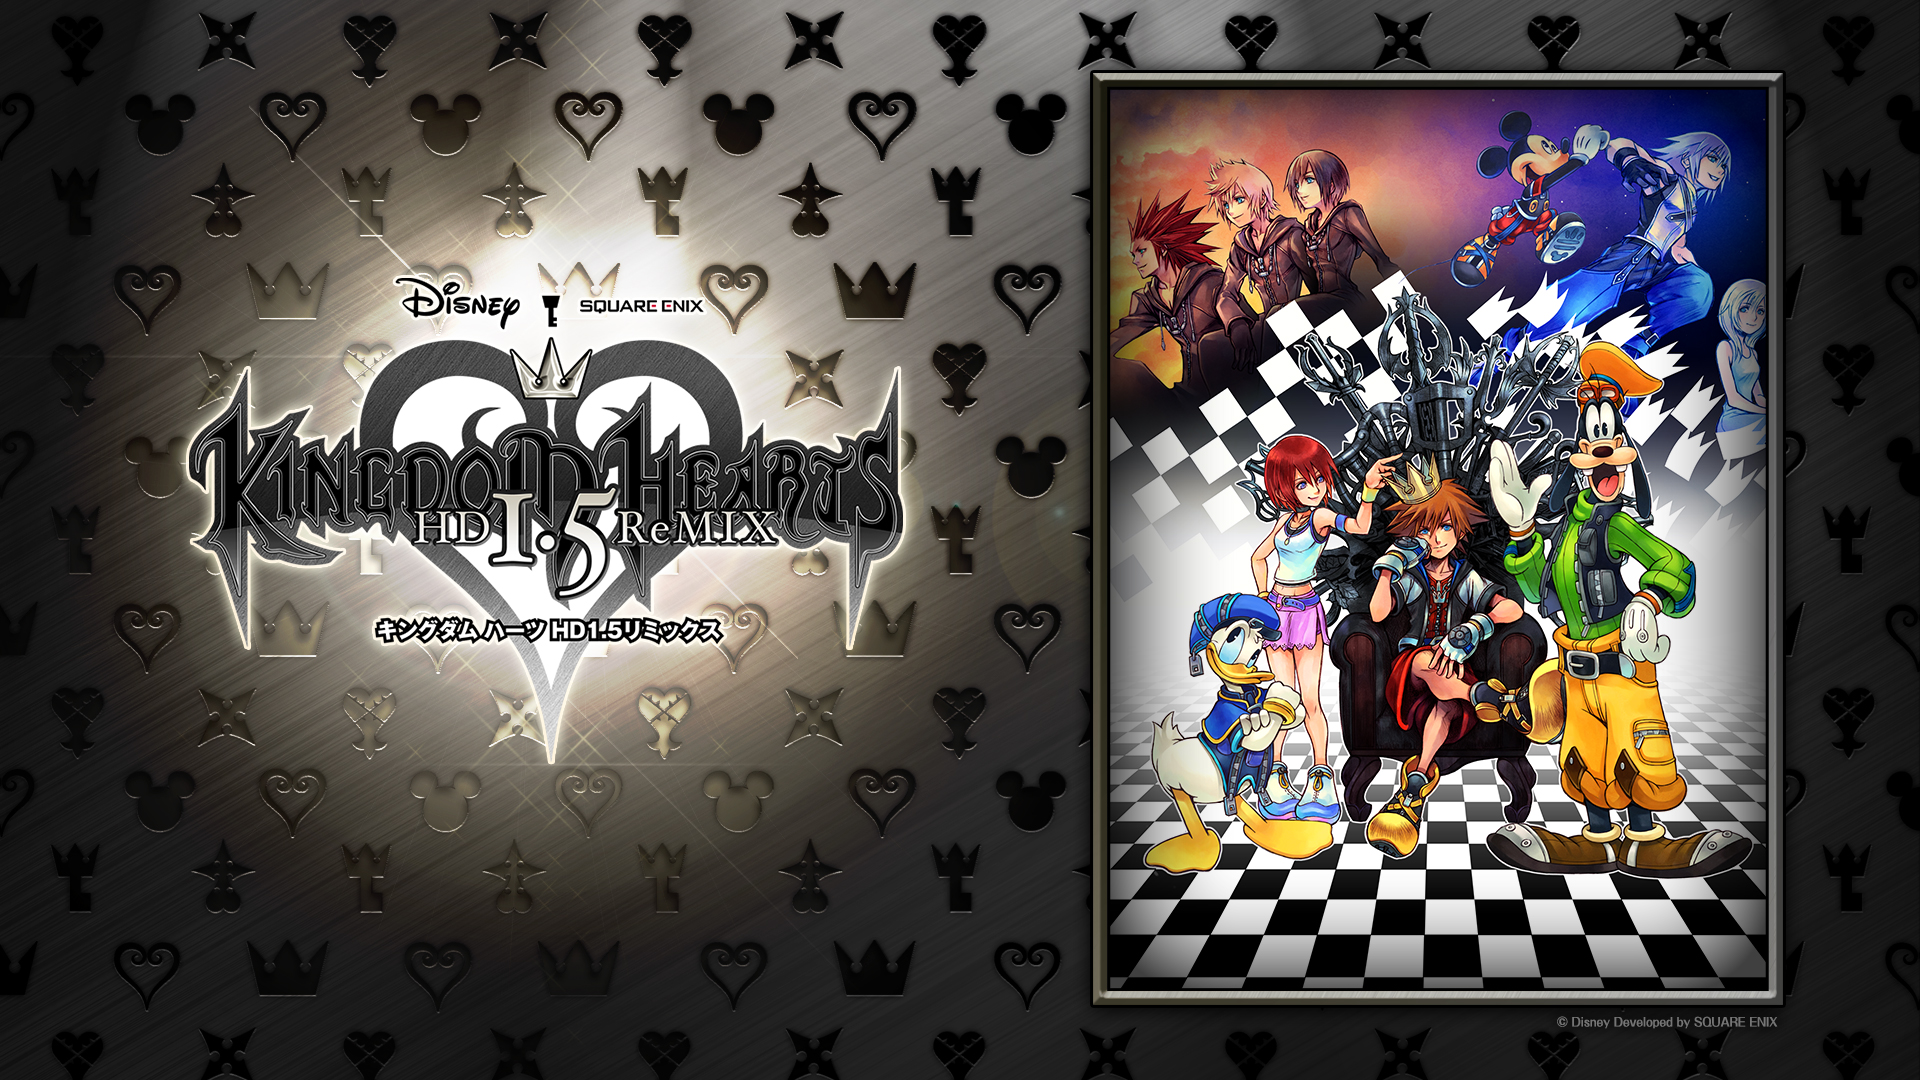 Kingdom Hearts Remix 1 5 & 2 5 Still Considered For PS4